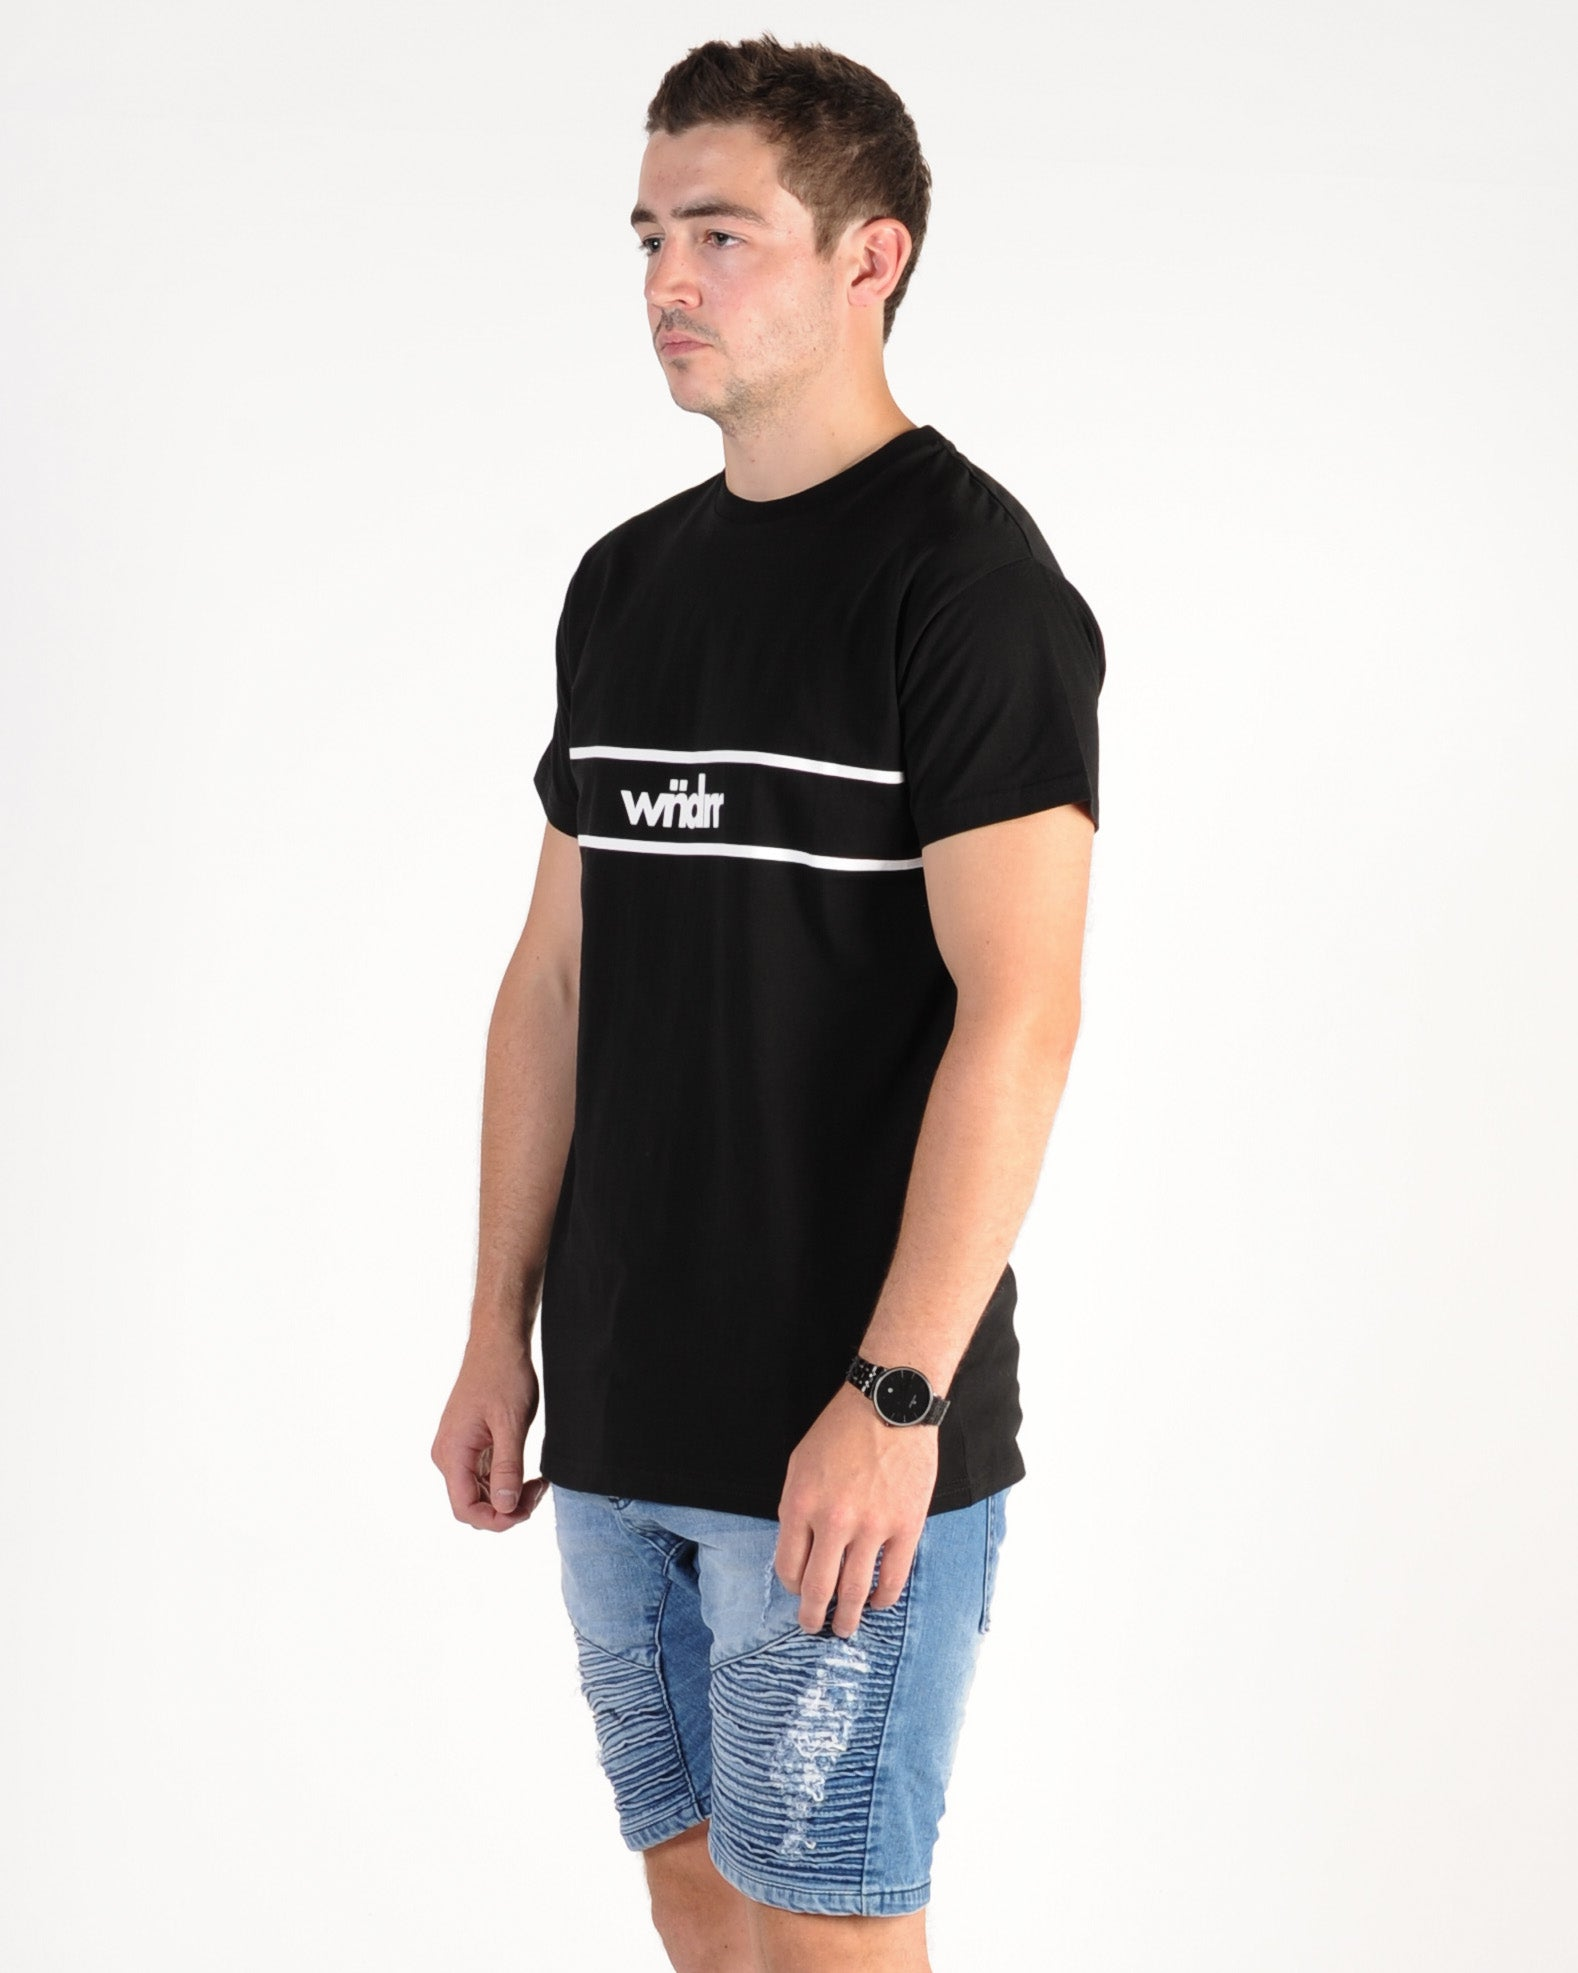 Wndrr District Custom Fit Tee - Black